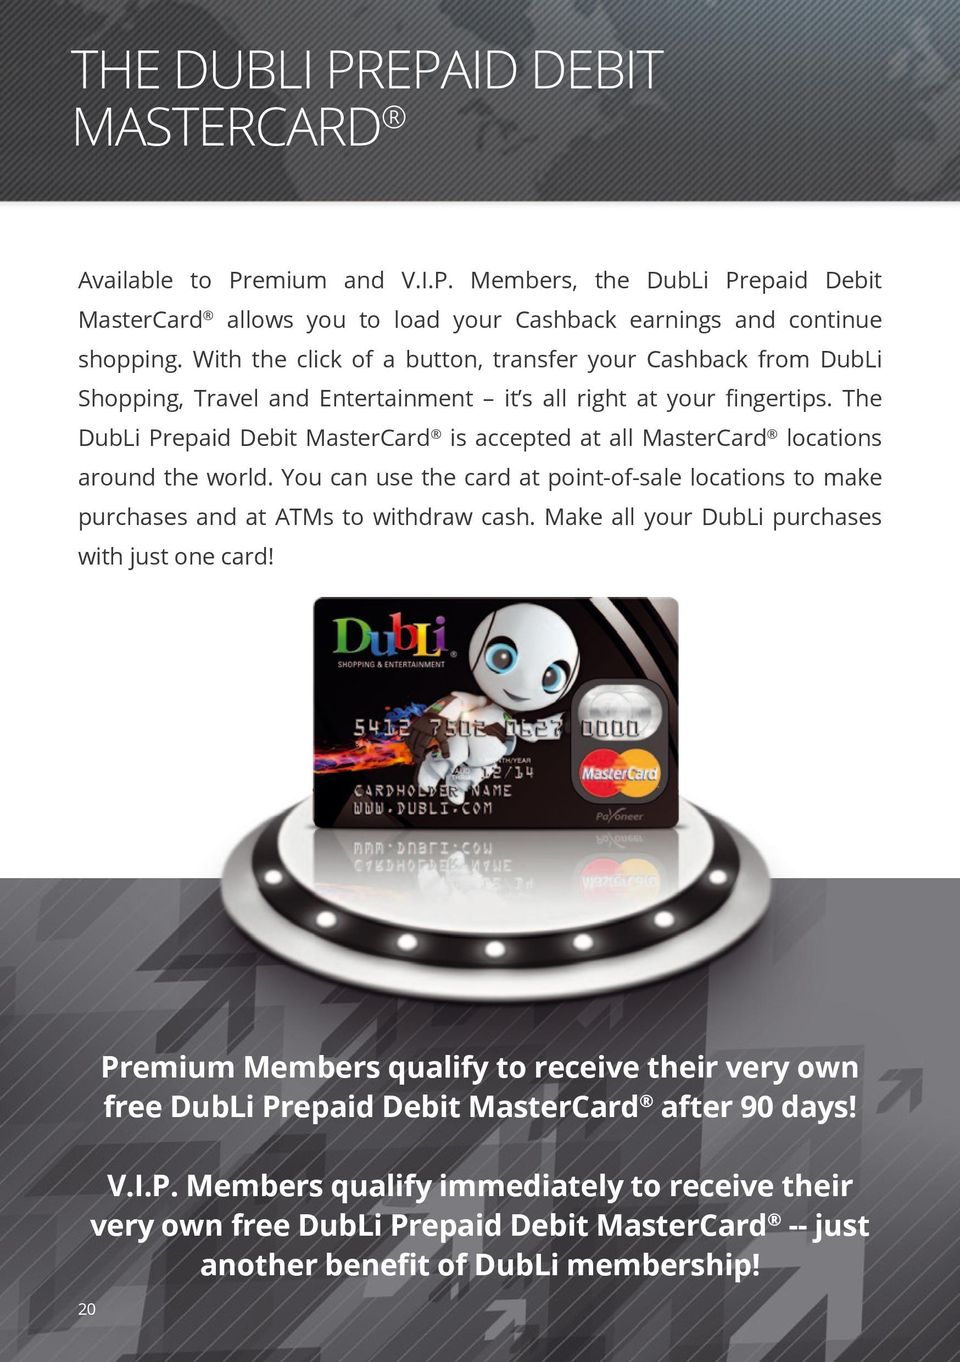 The DubLi Prepaid Debit MasterCard is accepted at all MasterCard locations around the world. You can use the card at point-of-sale locations to make purchases and at ATMs to withdraw cash.